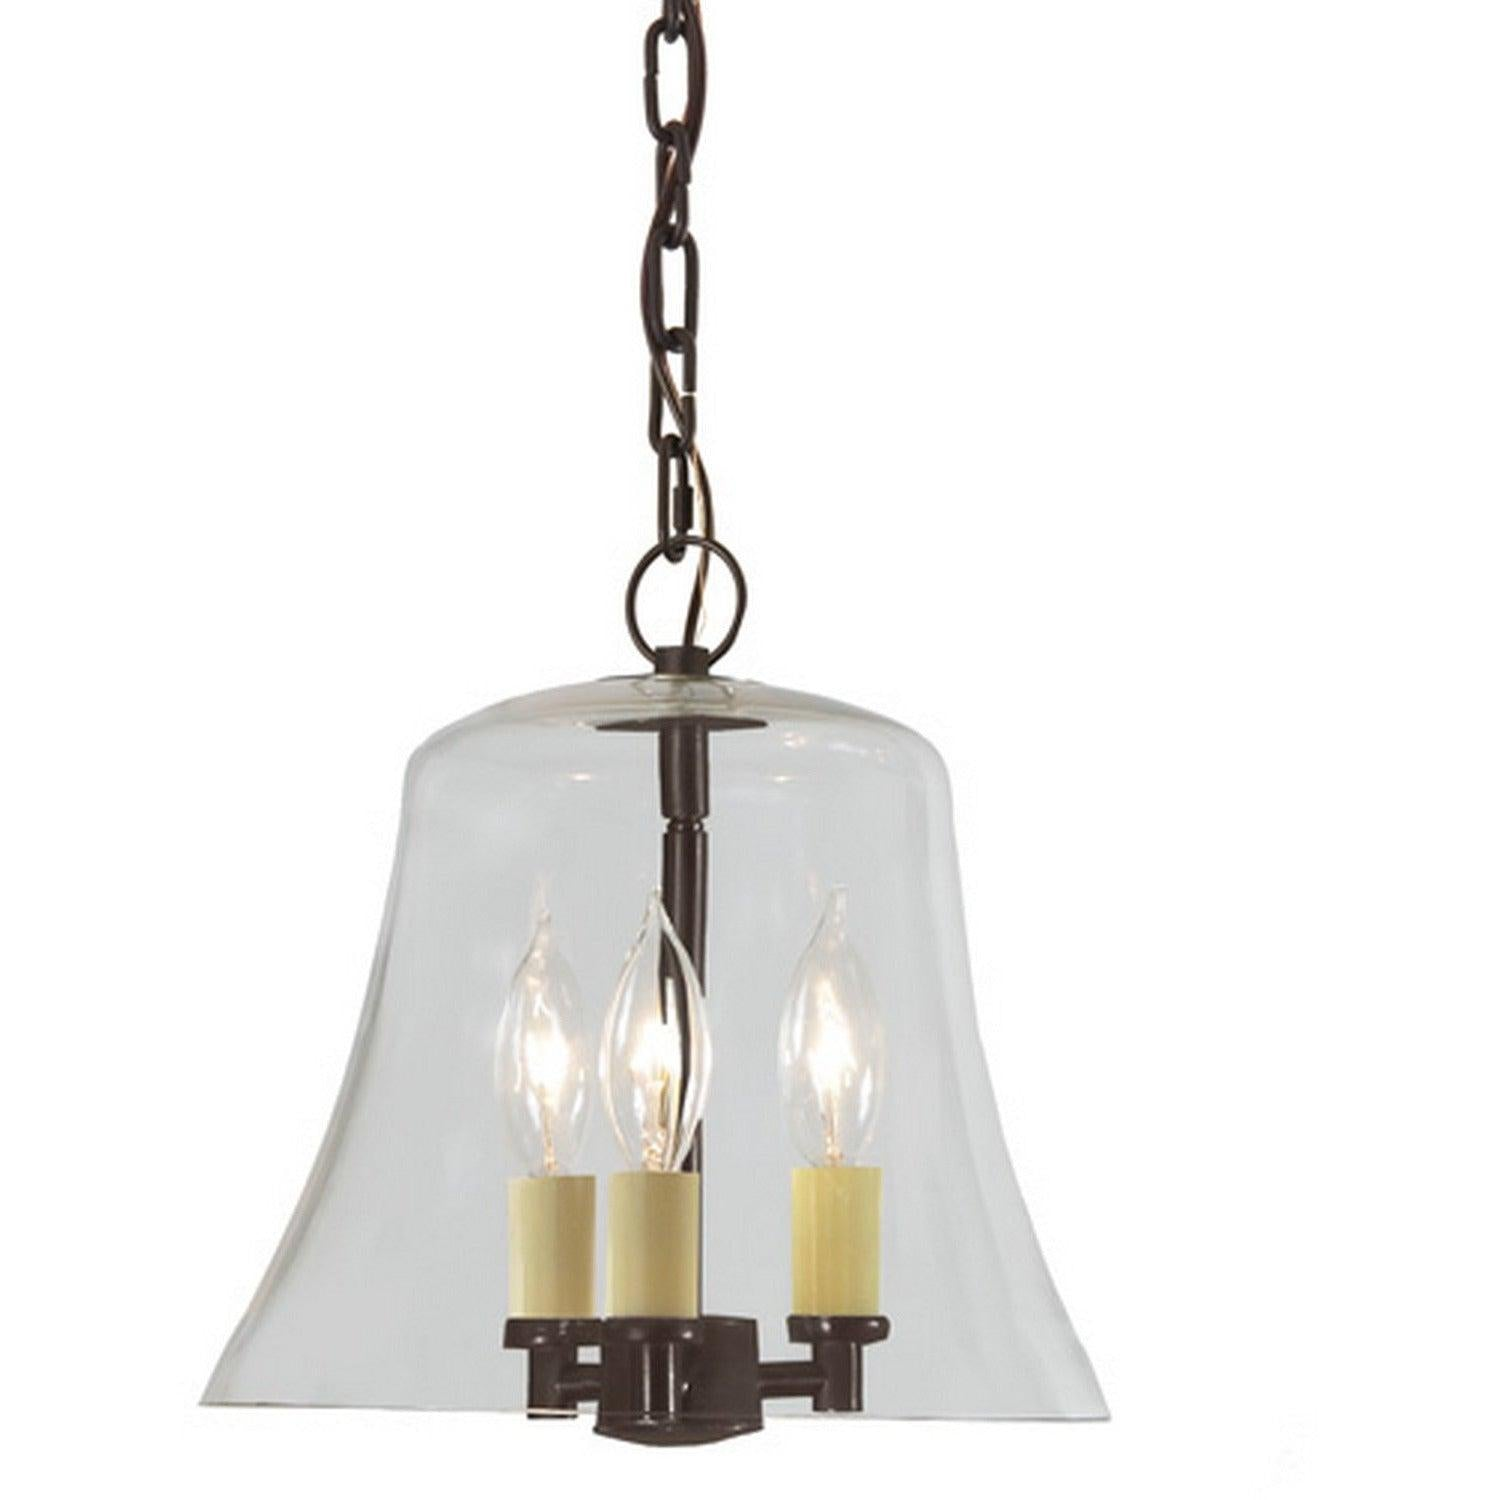 JVI Designs - 1183 - Pendant - Greenwich - Oil Rubbed Bronze